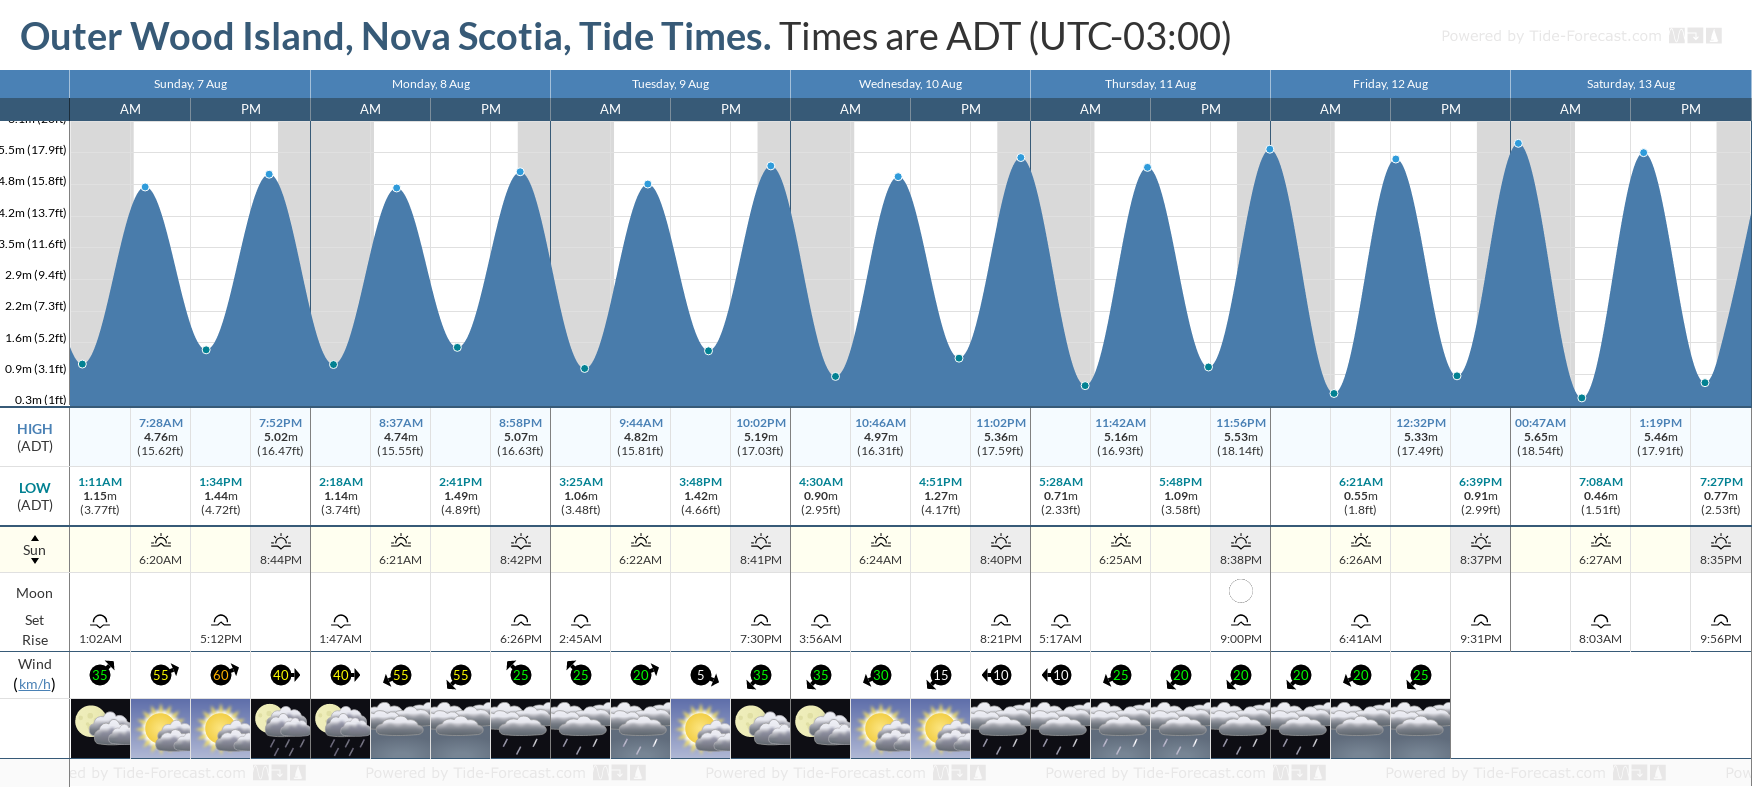 Outer Wood Island, Nova Scotia Tide Chart including high and low tide tide times for the next 7 days